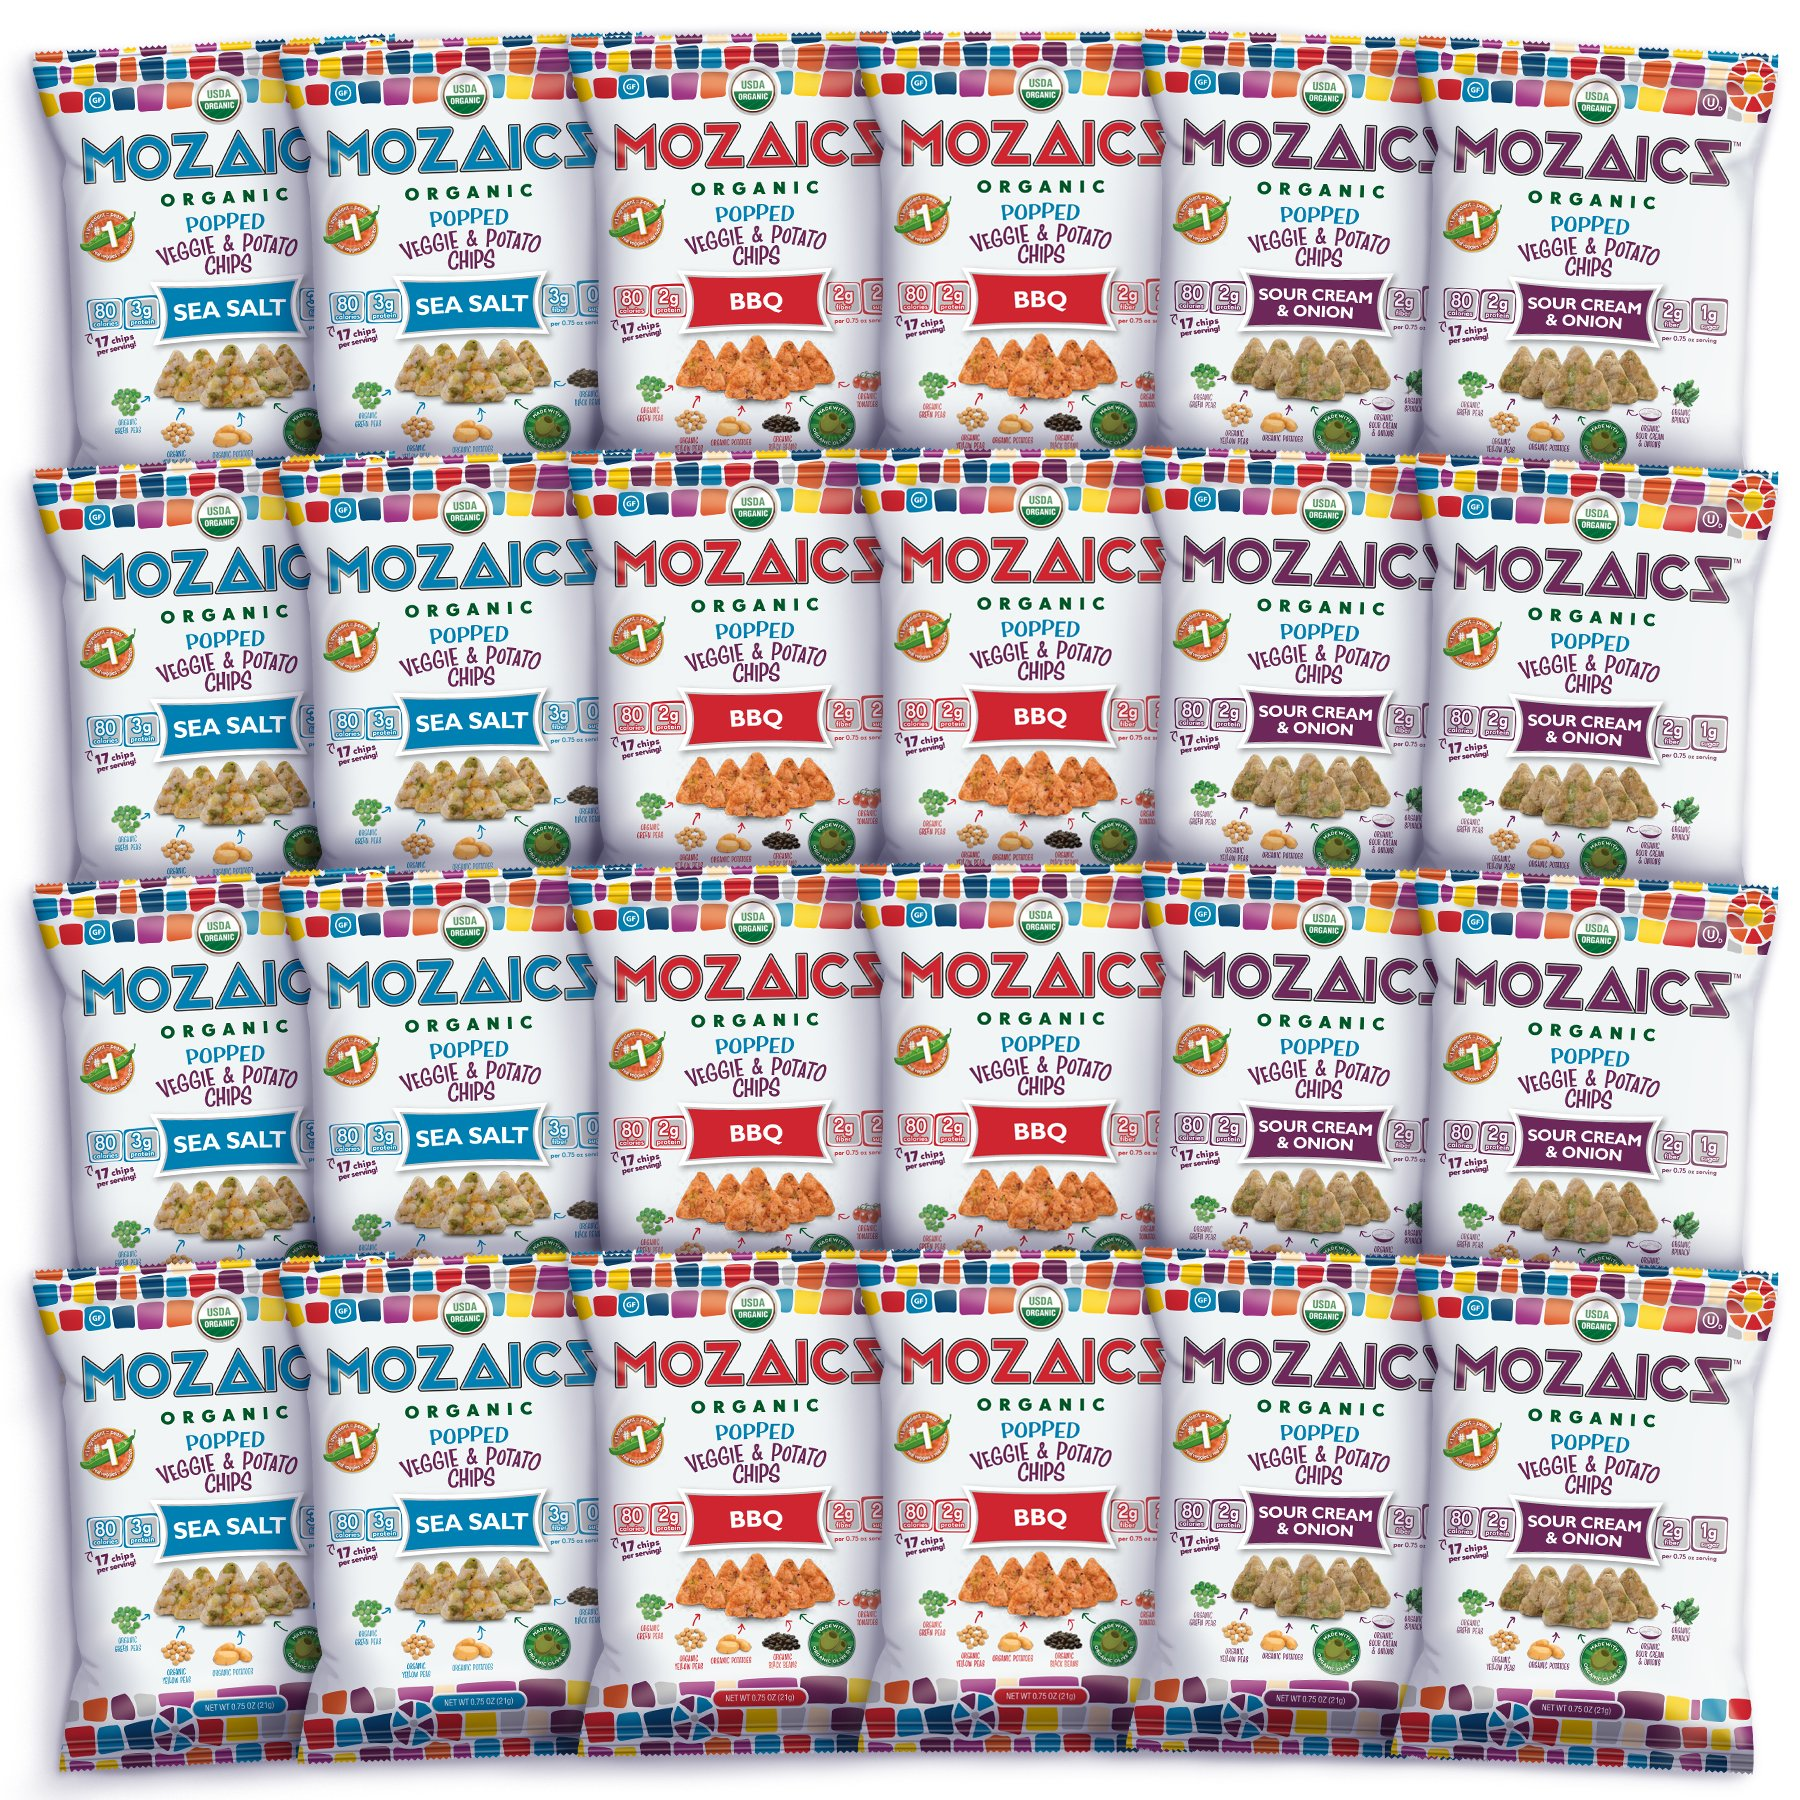 Mozaics Organic Popped Veggie & Potato Chips- Healthy snack~100 calorie snack, better than veggie straws or stix - gluten free - 0.75oz single serve bags (Best Sellers, 24-count) by Mozaics